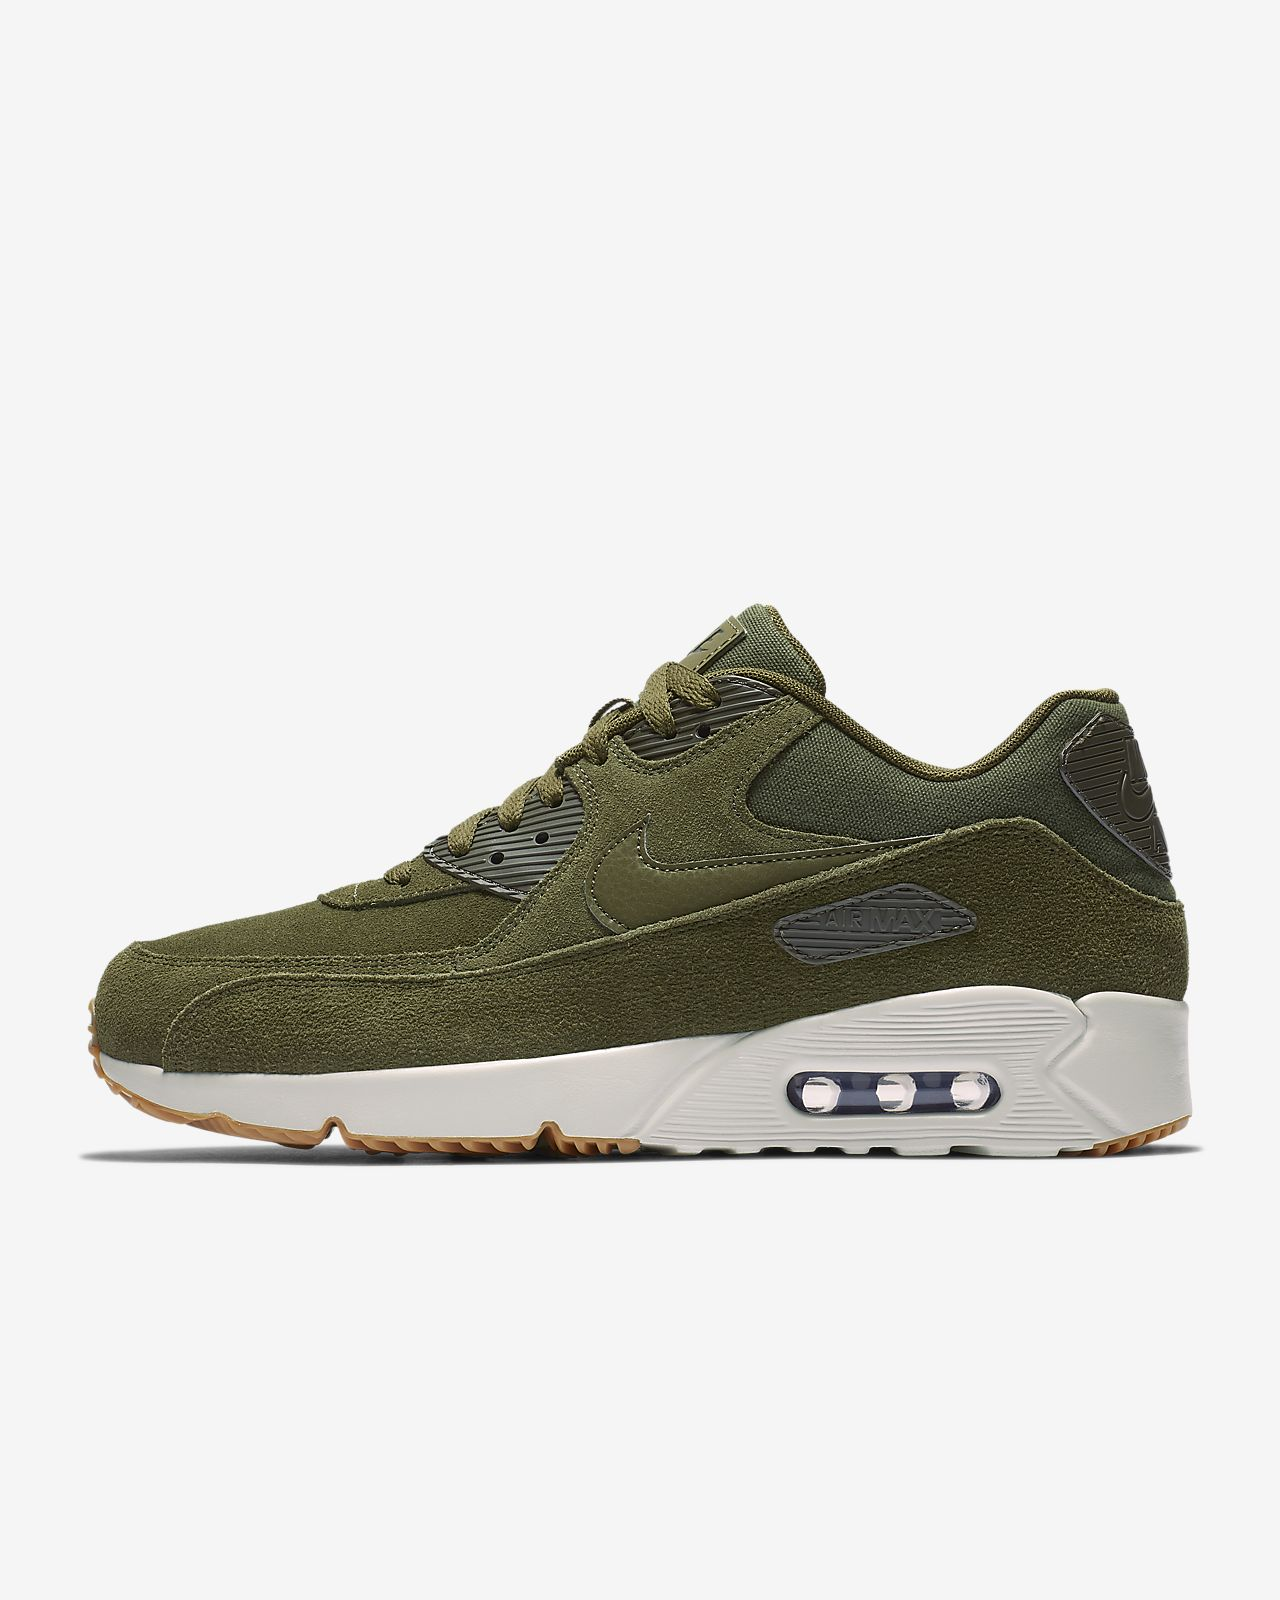 buy popular bd208 9f9d9 Low Resolution Nike Air Max 90 Ultra 2.0 Men s Shoe Nike Air Max 90 Ultra  2.0 Men s Shoe